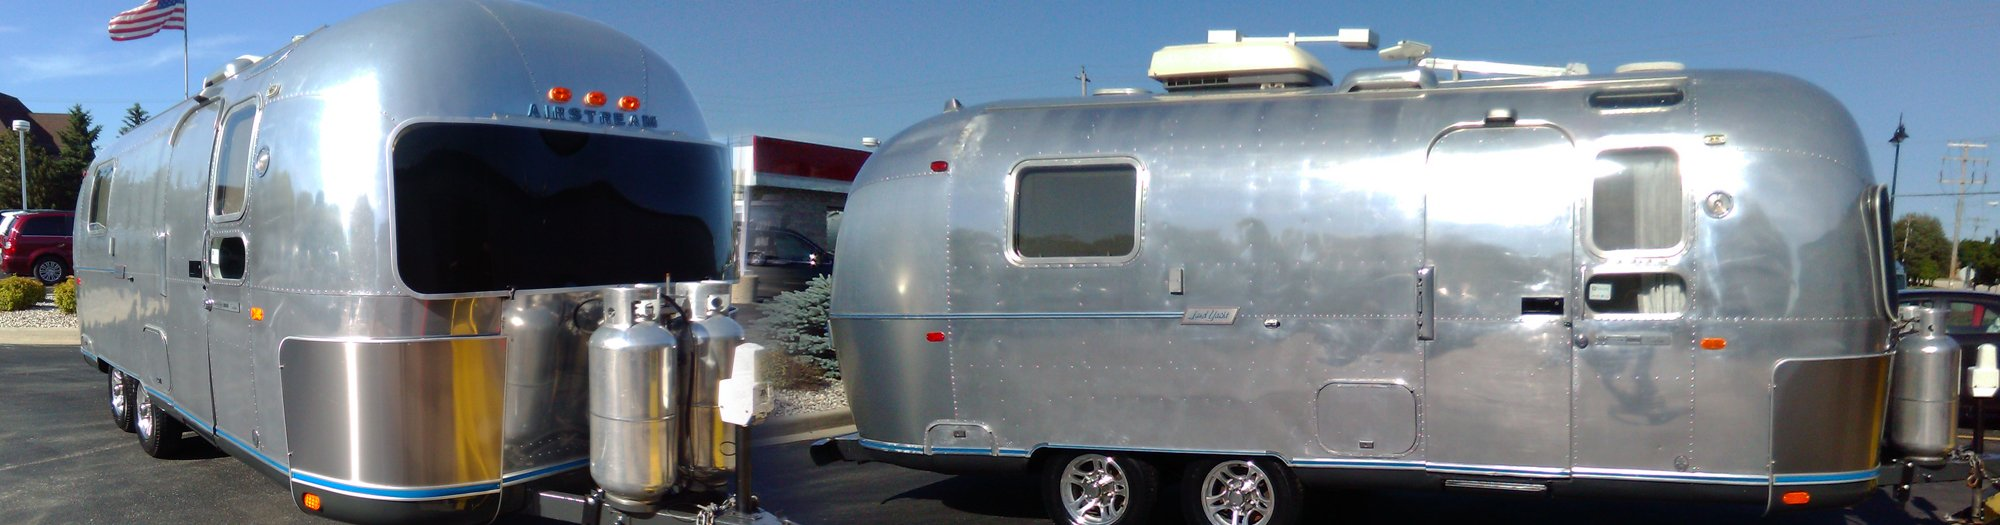 Ewald's Airstream of Wisconsin